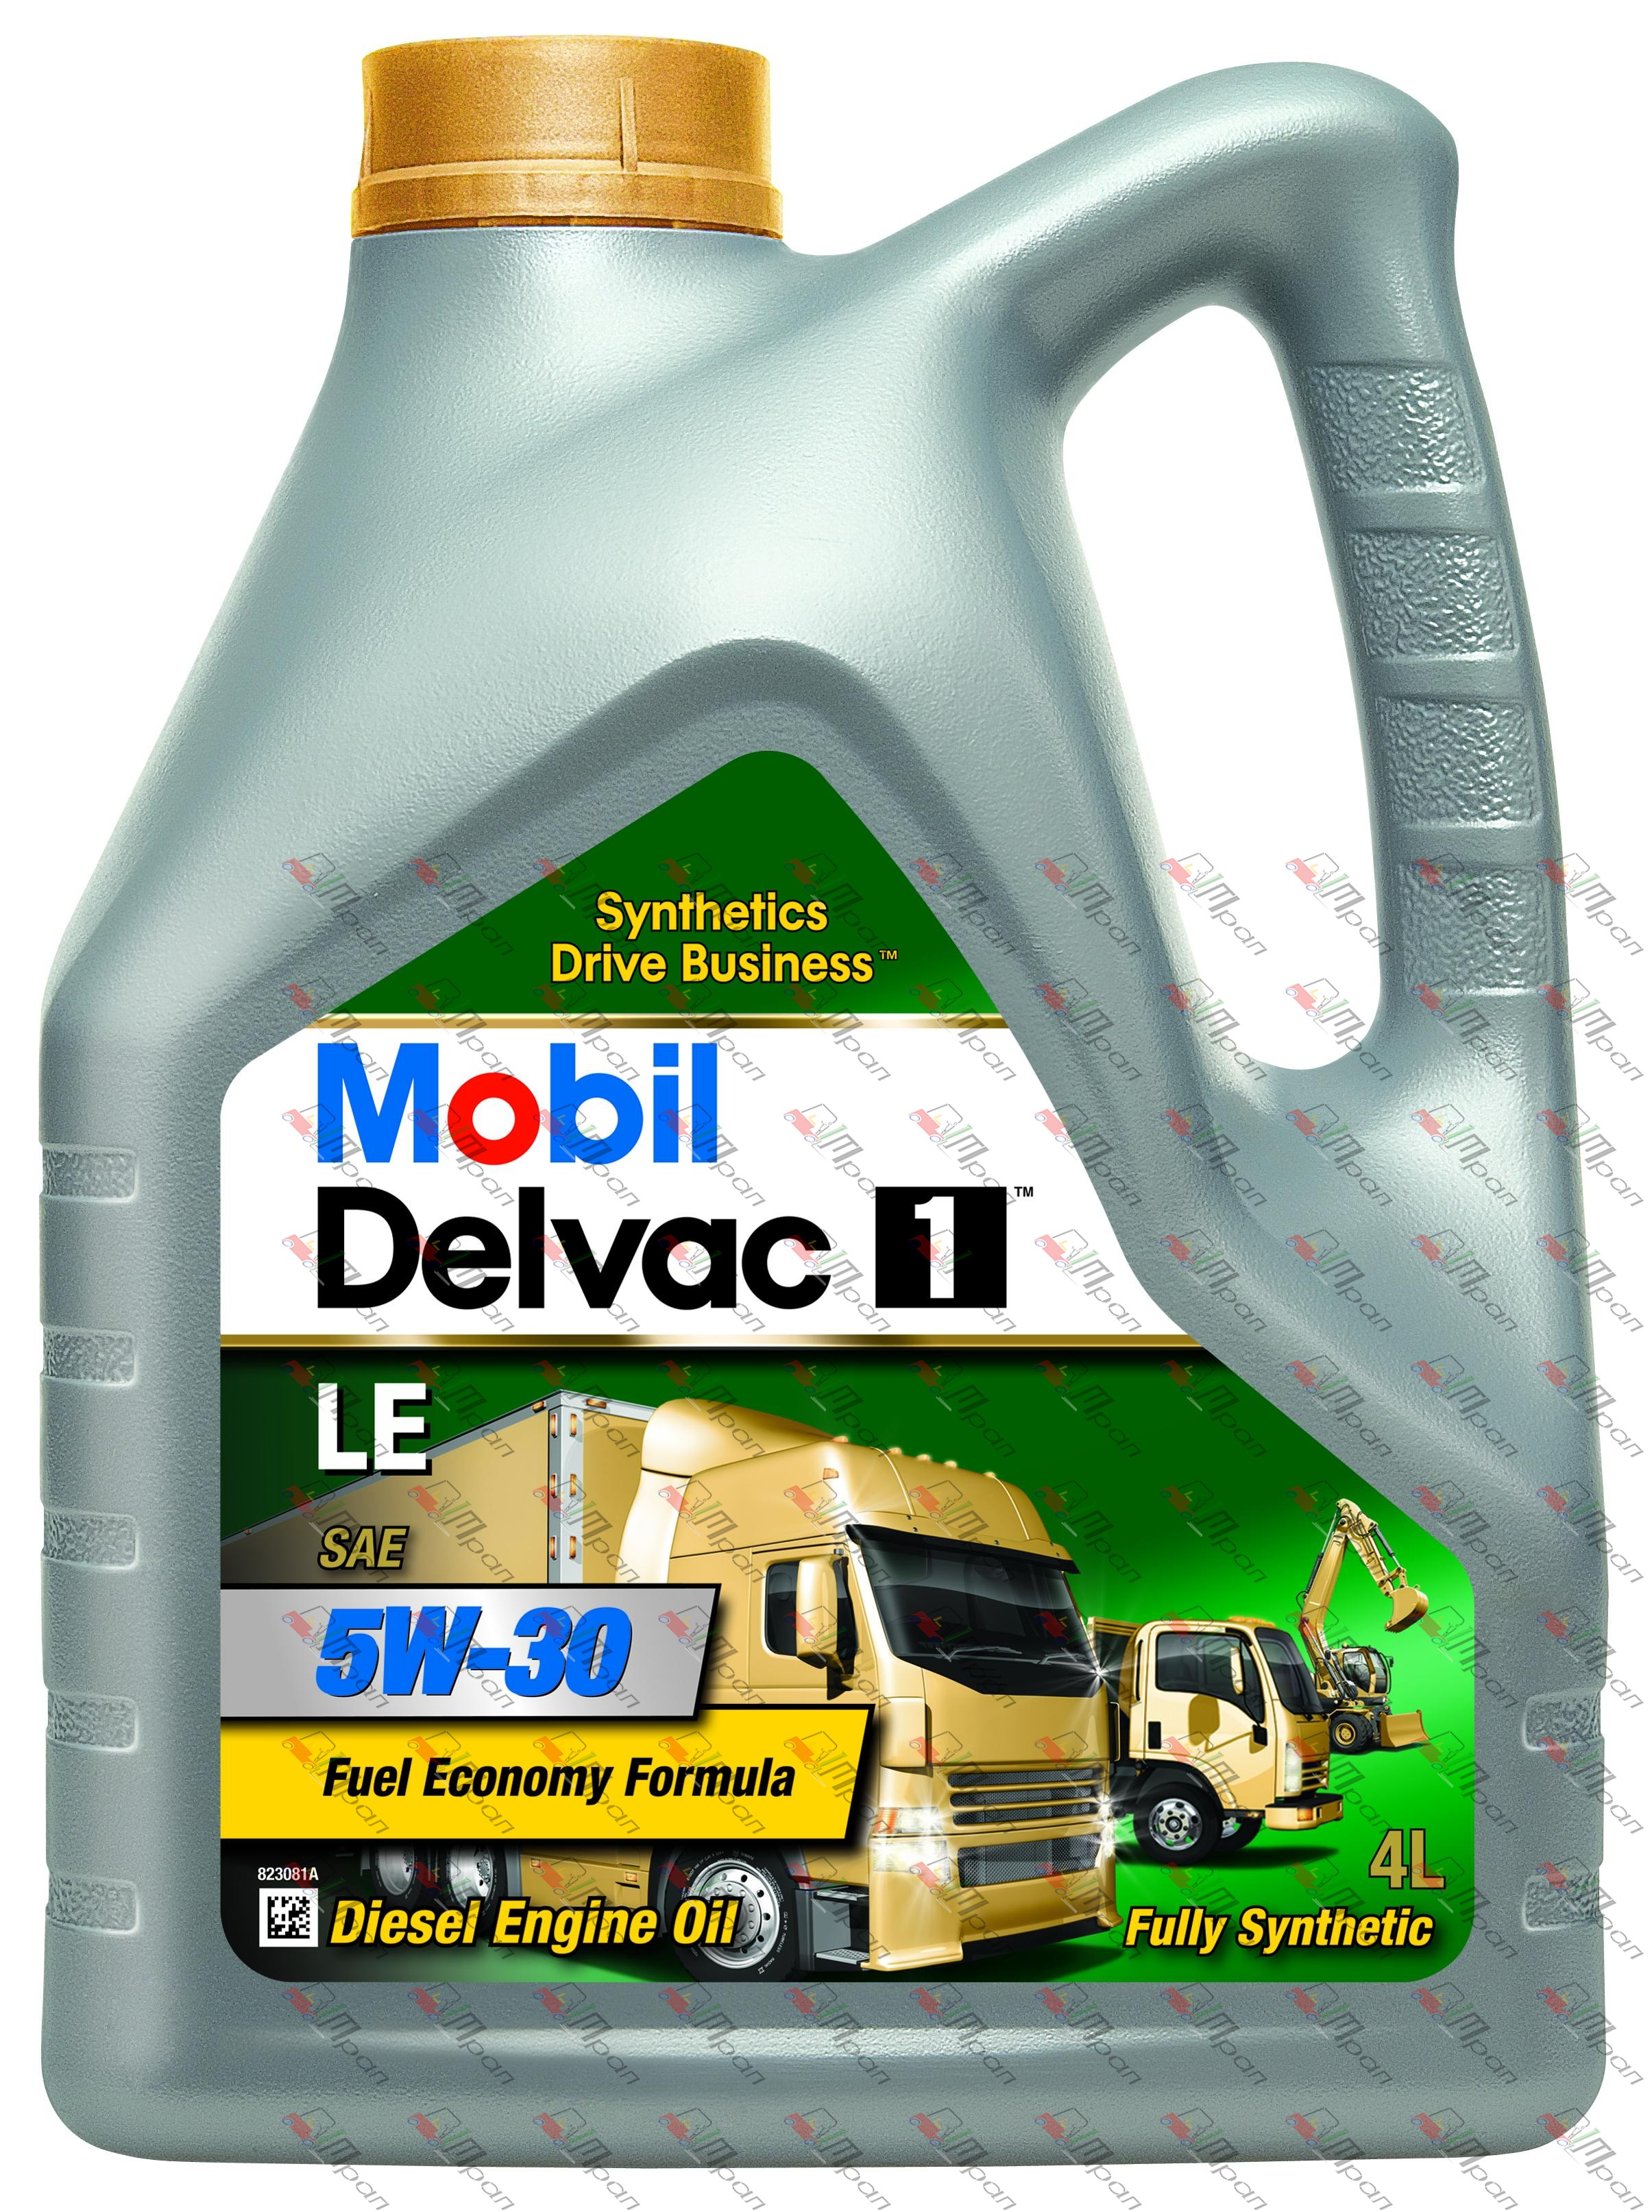 Mobil Масло моторное Mobil Delvac 1 LE 5w30 4л